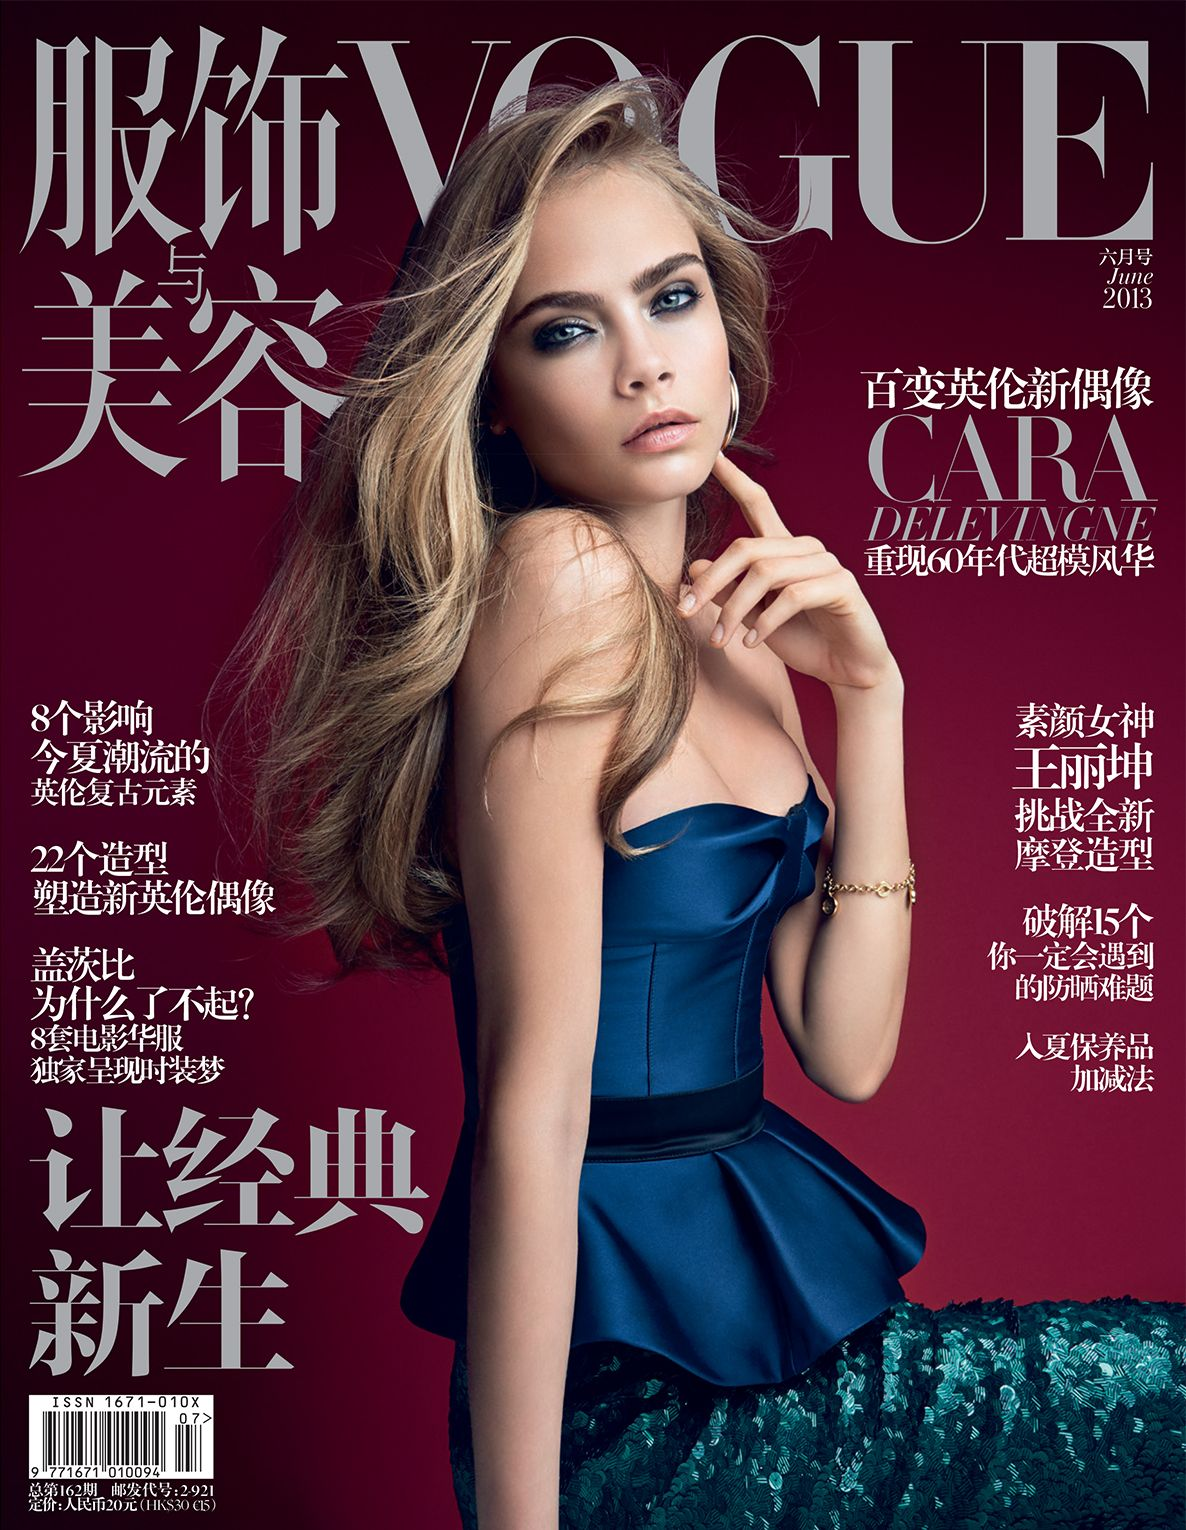 British model Cara Delevingne wearing Burberry Prorsum on the cover of the June issue of Vogue China